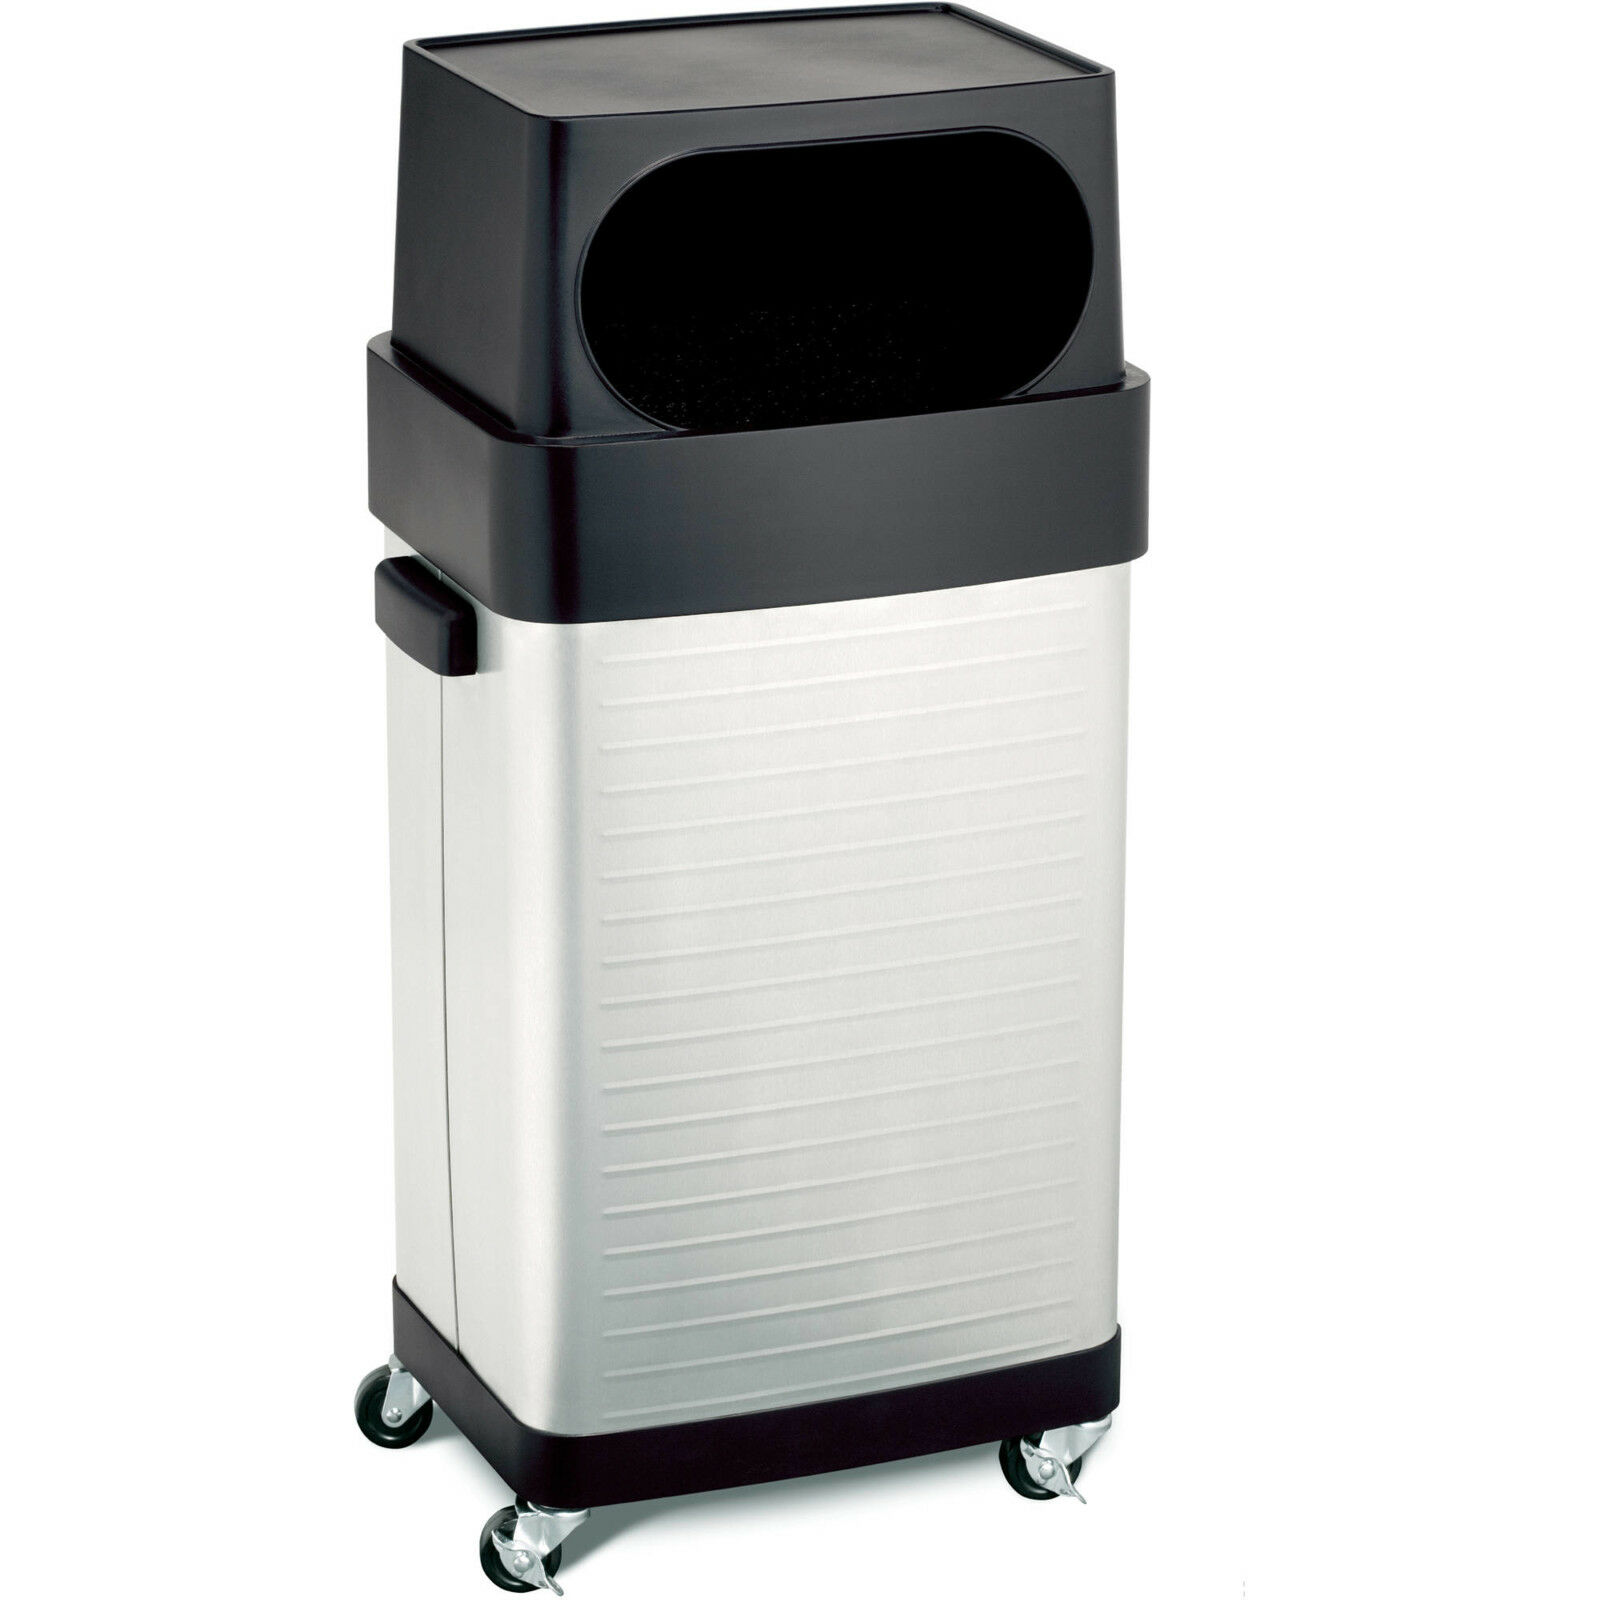 Commercial Trash Bin Wheels Stainless Steel Kitchen Waste Garbage Can 17 Gallon